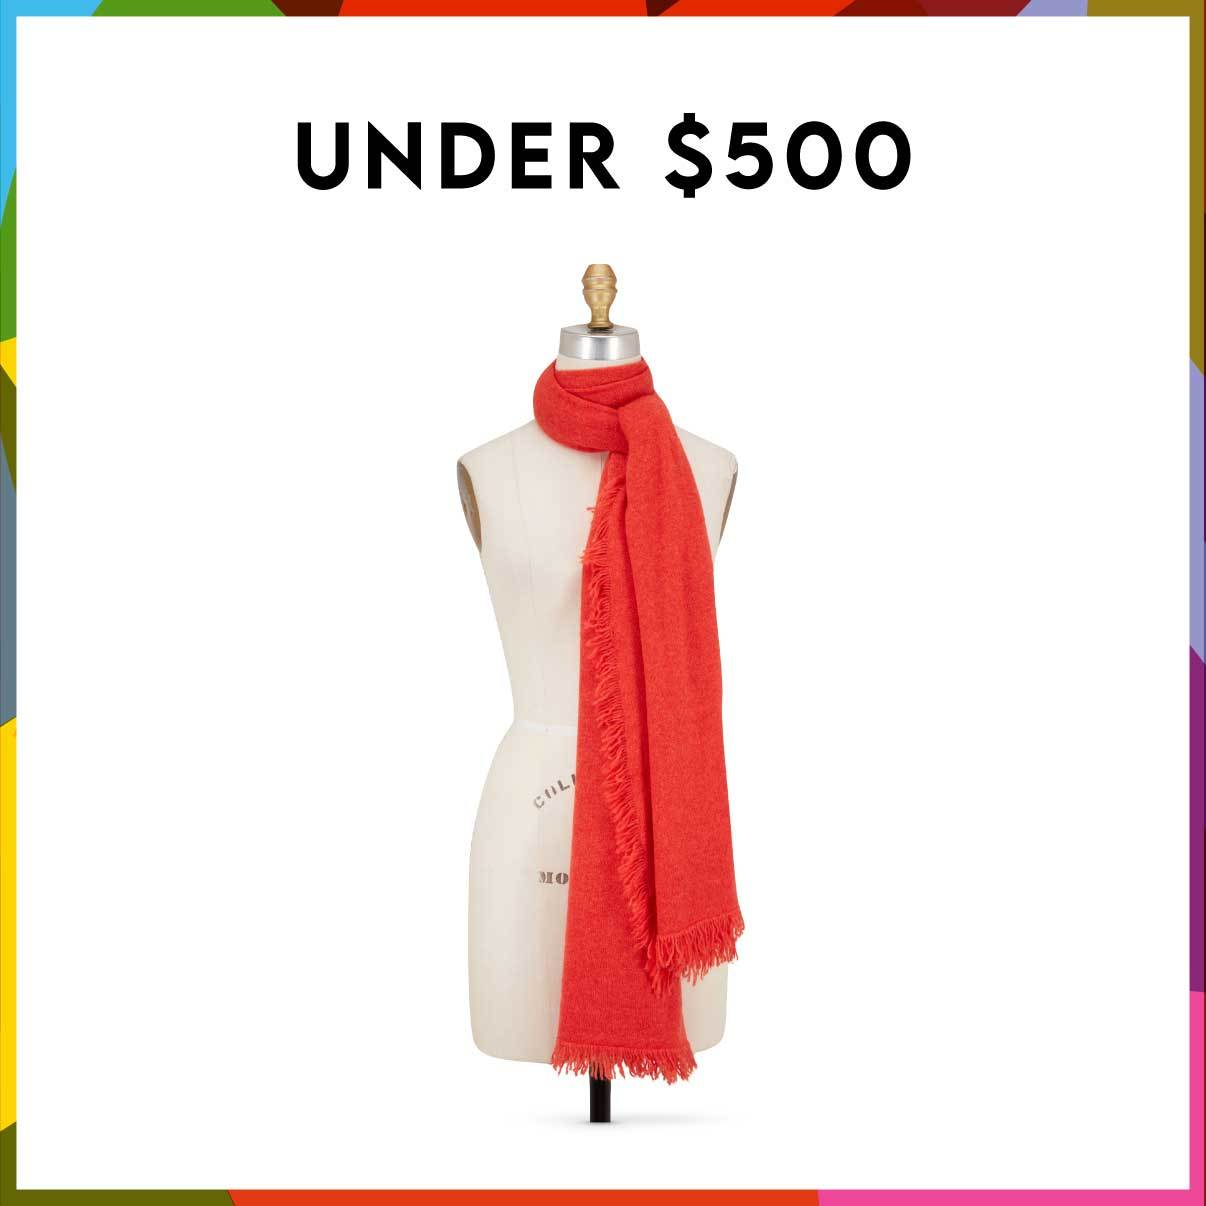 Gifts Under $500 for Her